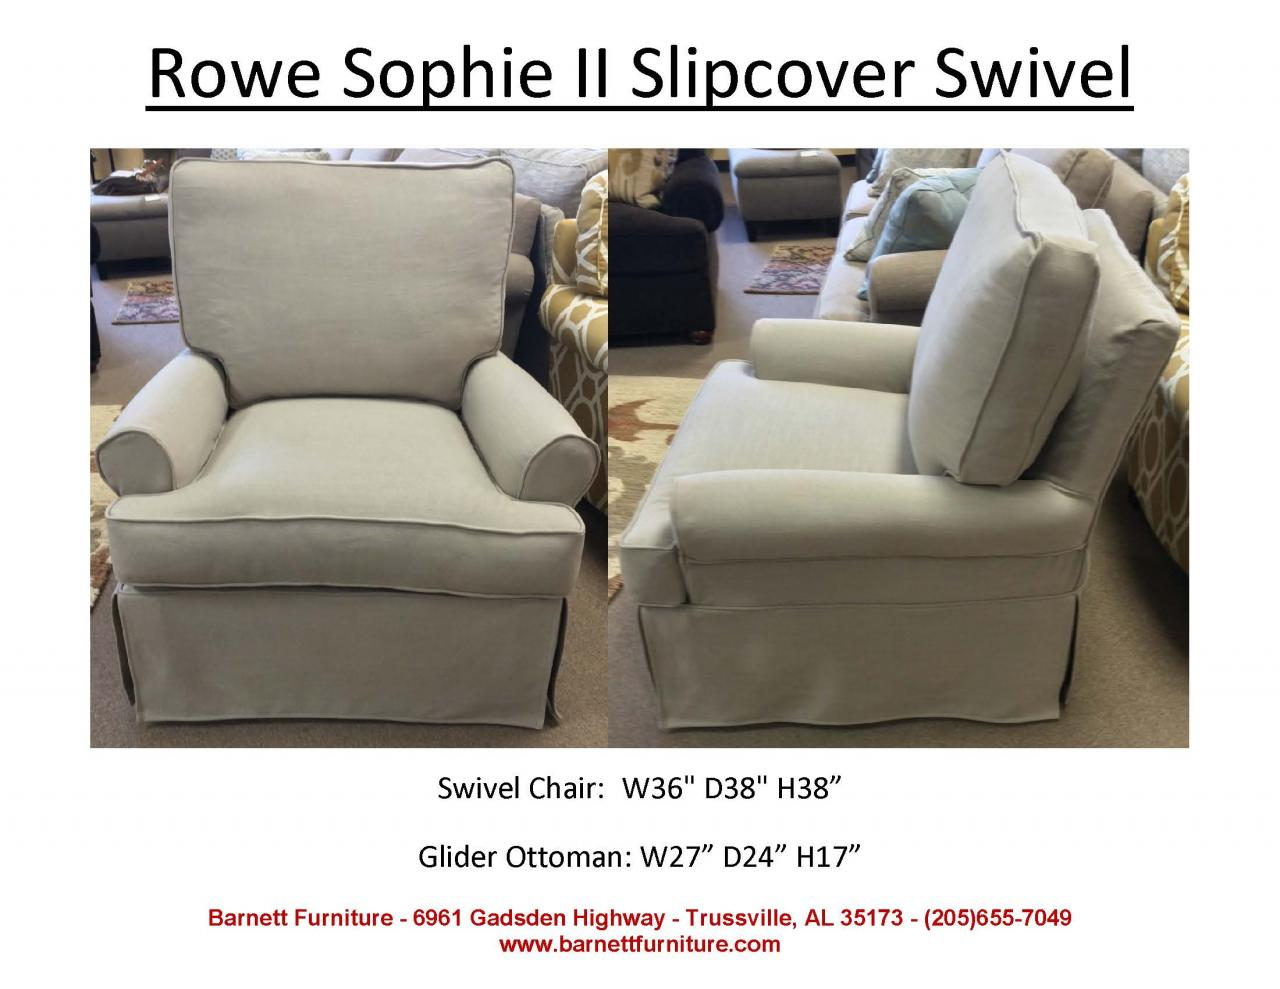 ... Rowe Furniture Sophie II Slipcover Swivel Chair ...